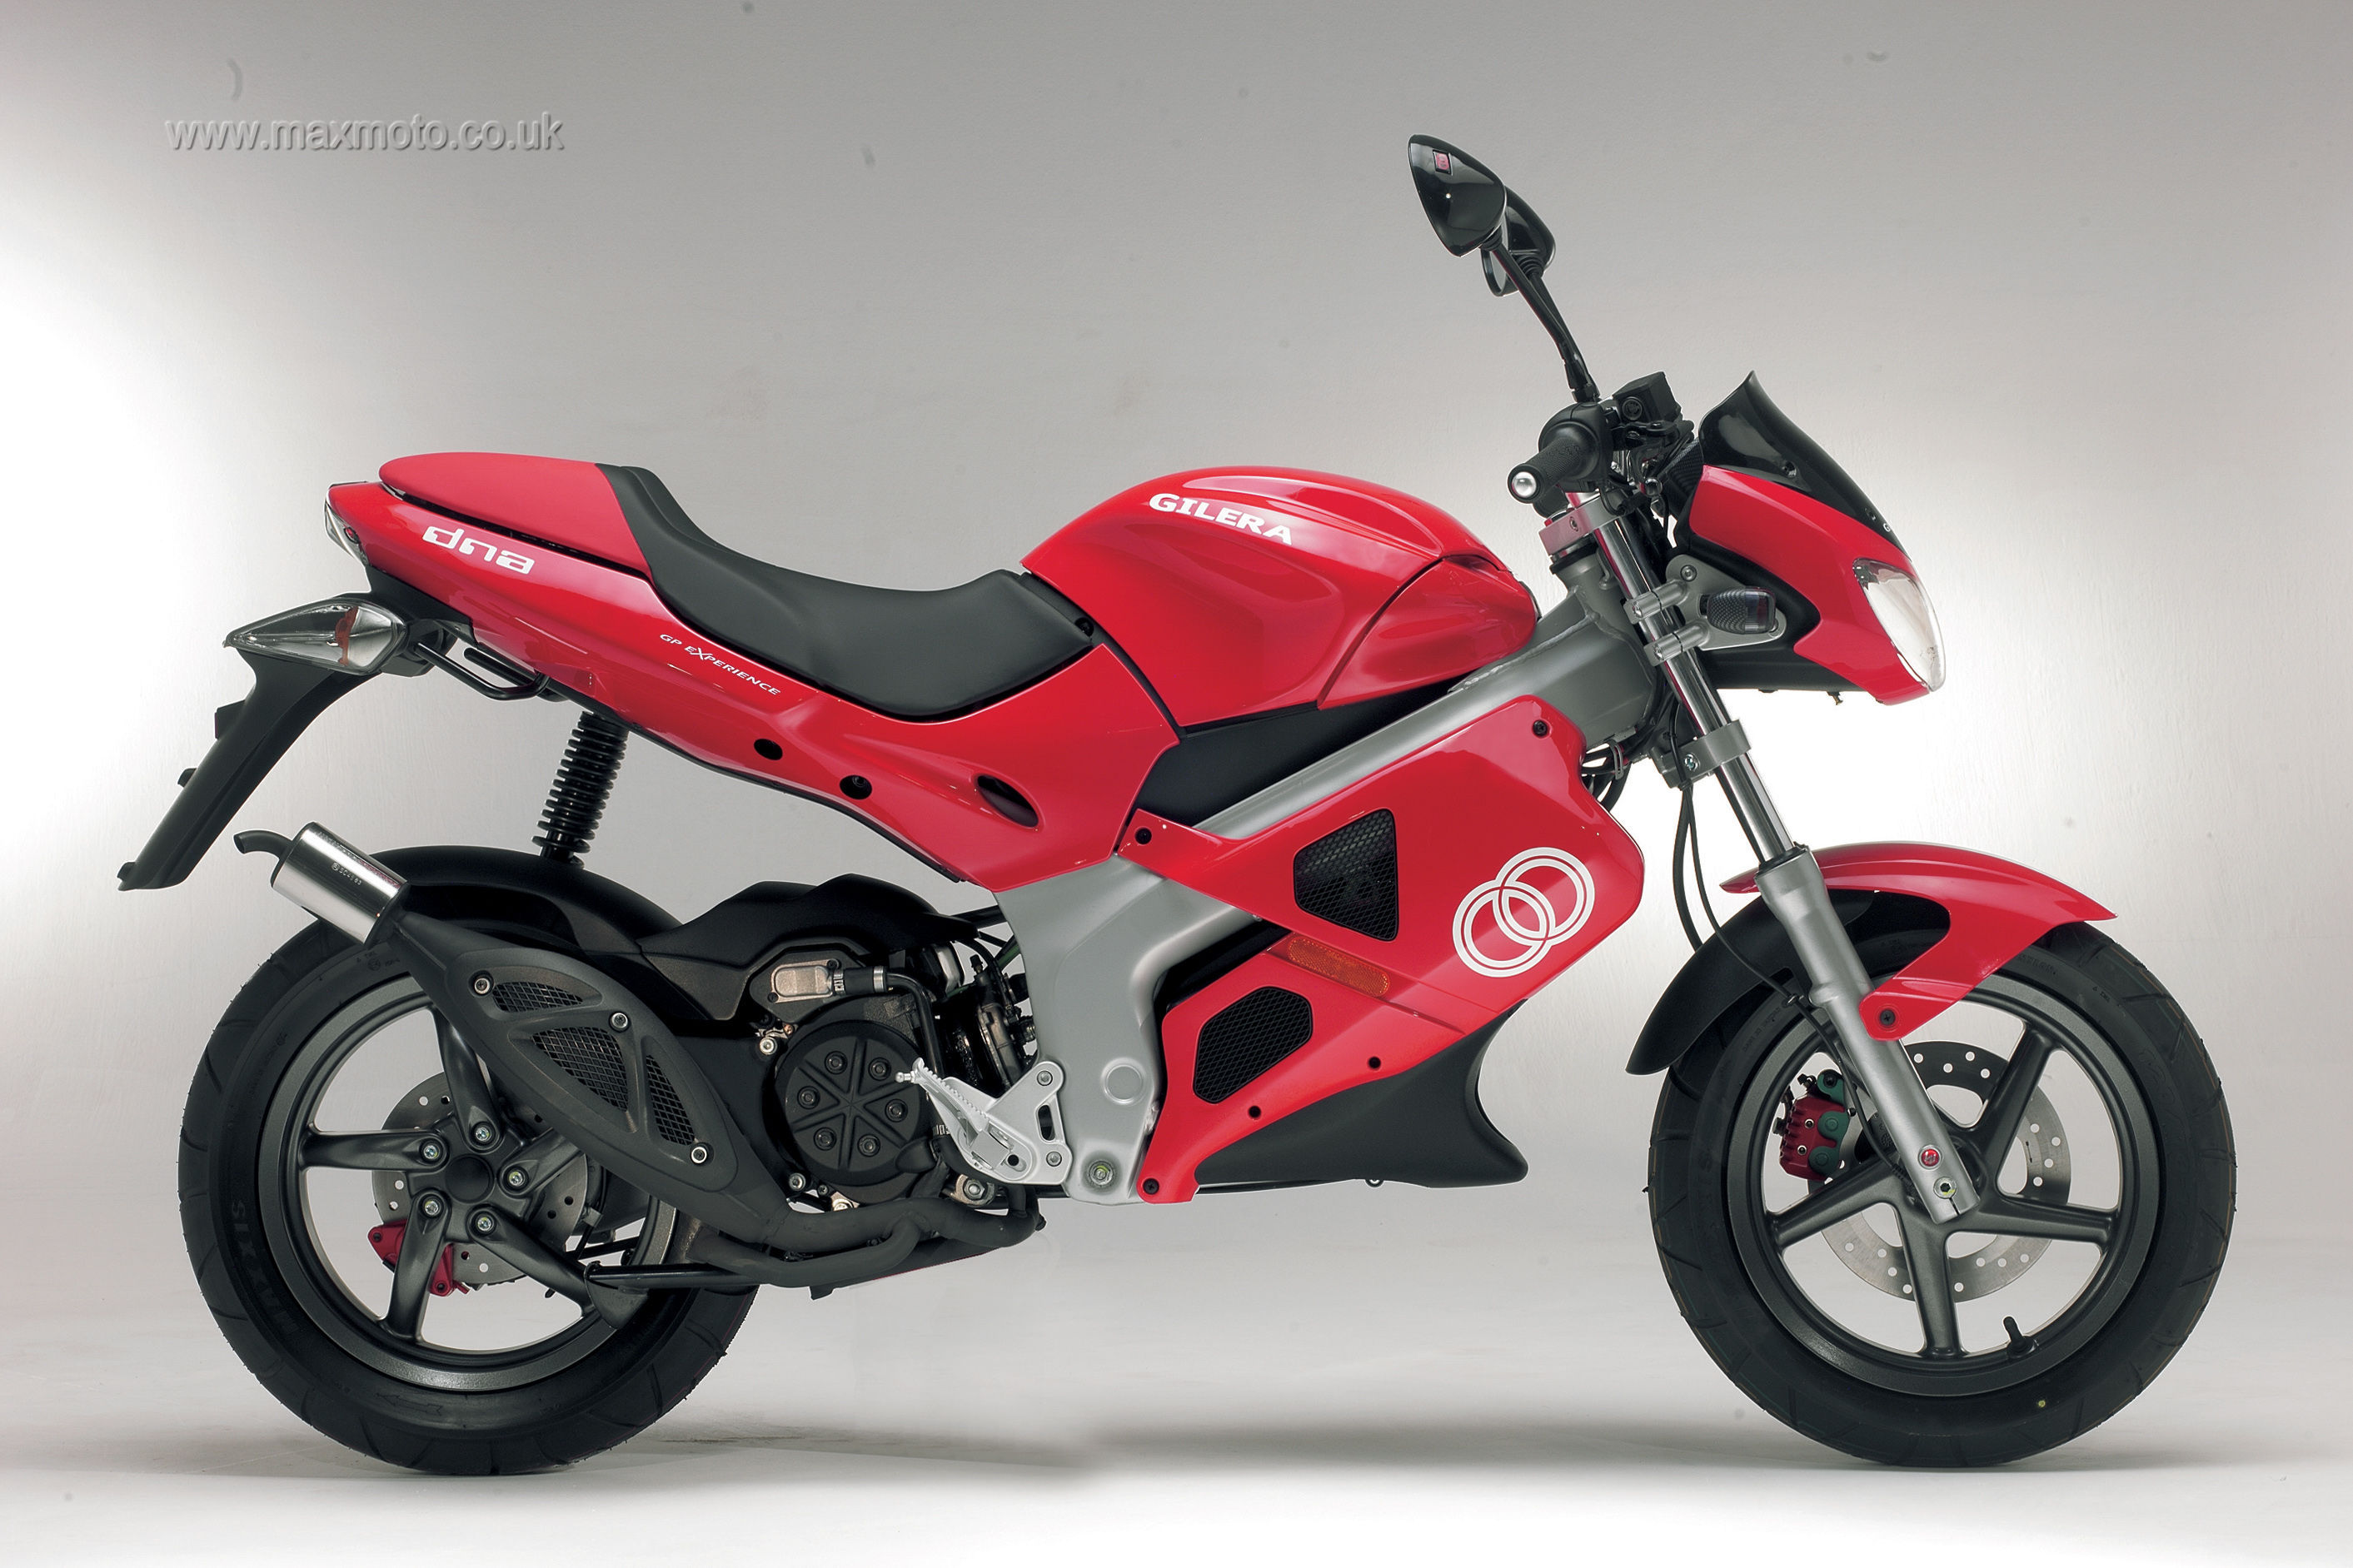 Gilera DNA 125 2002 images #96073